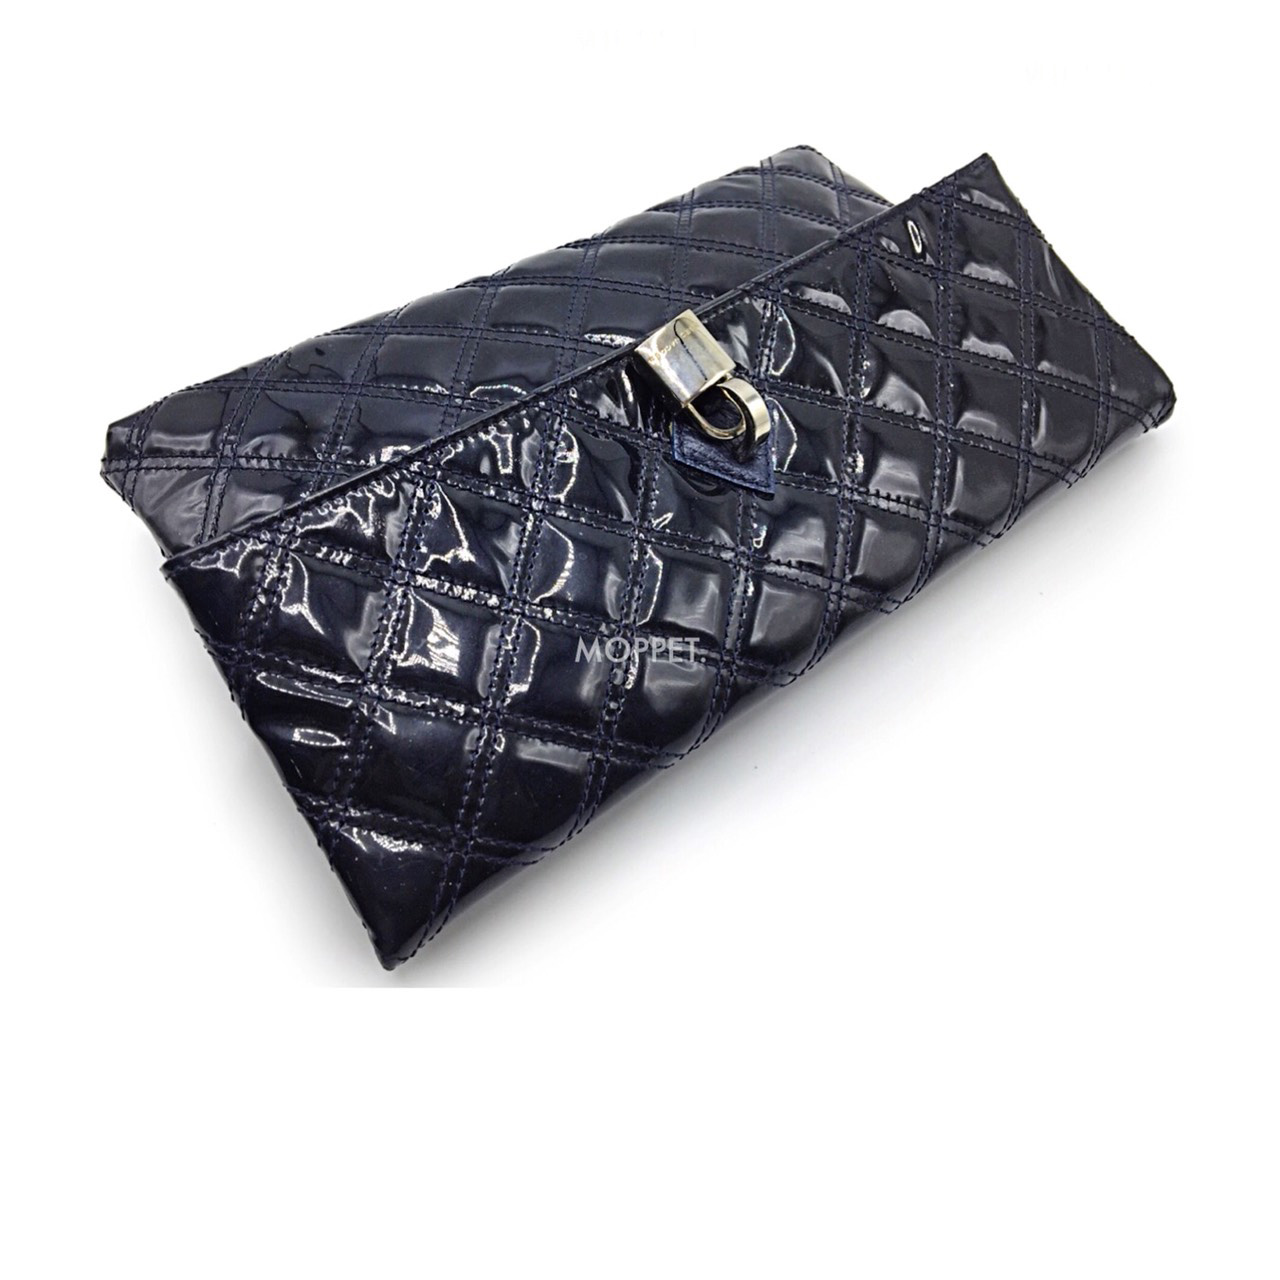 Used Marc By Marc Jacobs Clutch in Navy Patent SHW